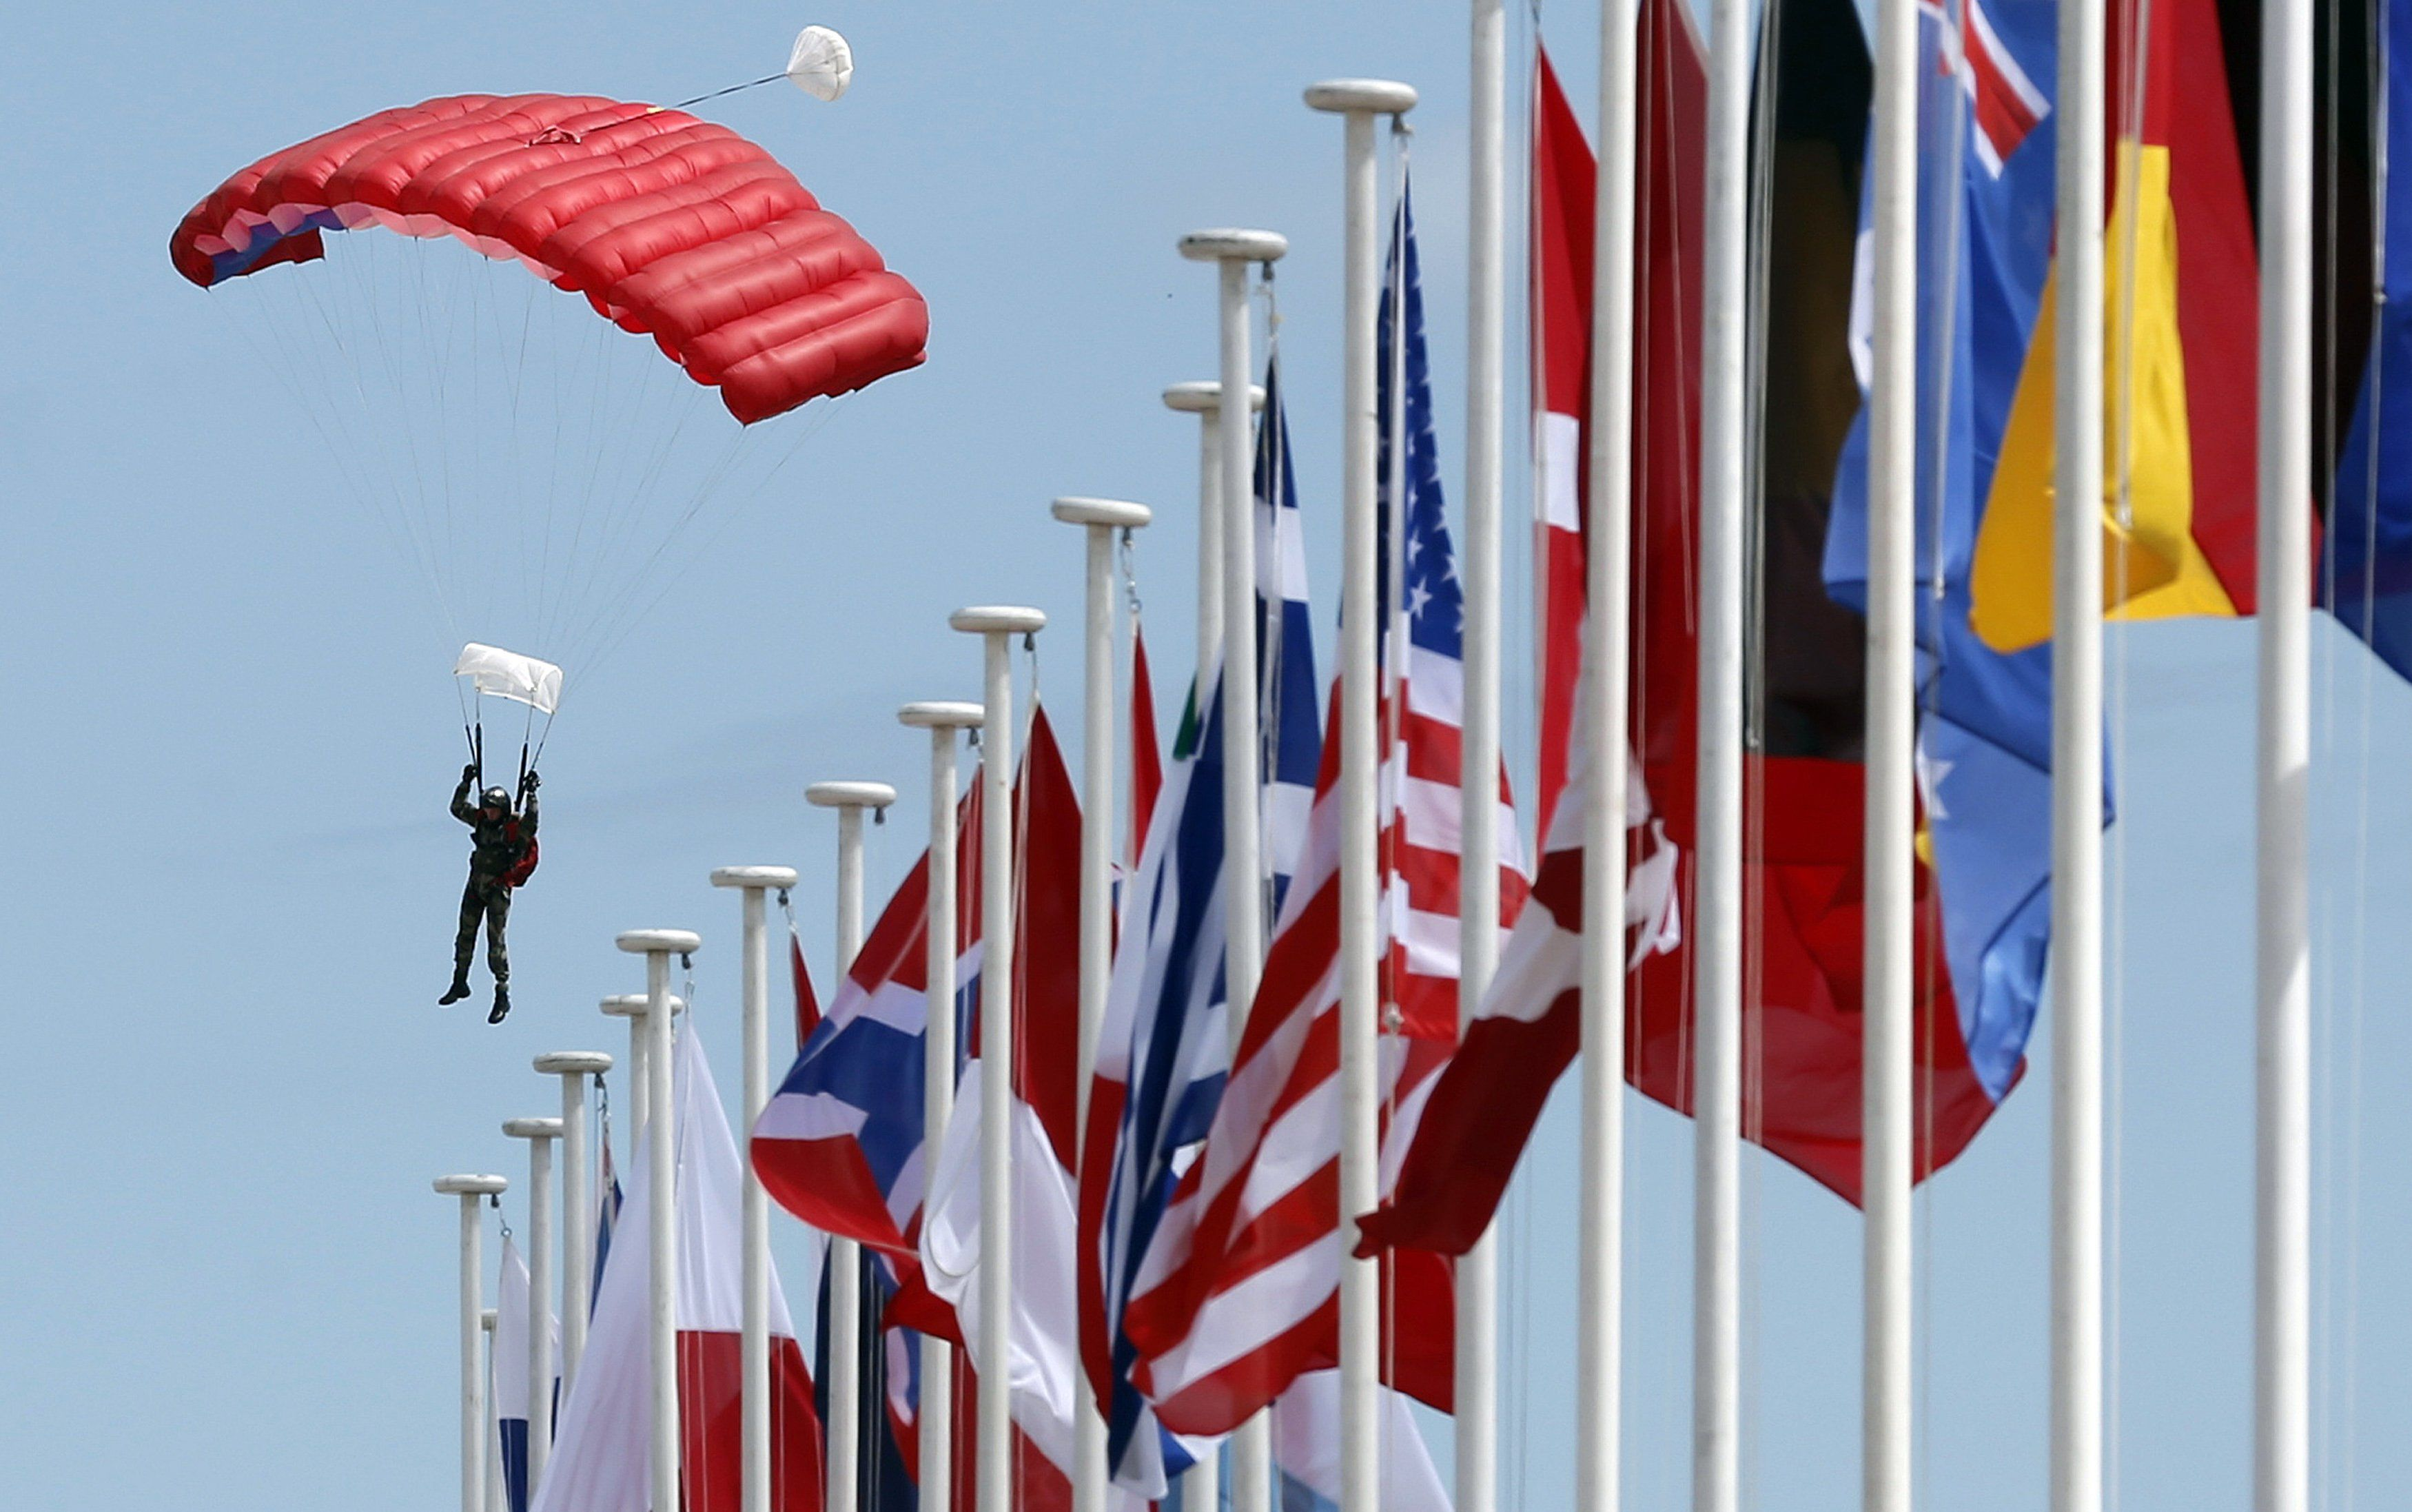 A paratrooper lands on Sword Beach near international flags during a D-Day celebration rehearsal in Ouistreham